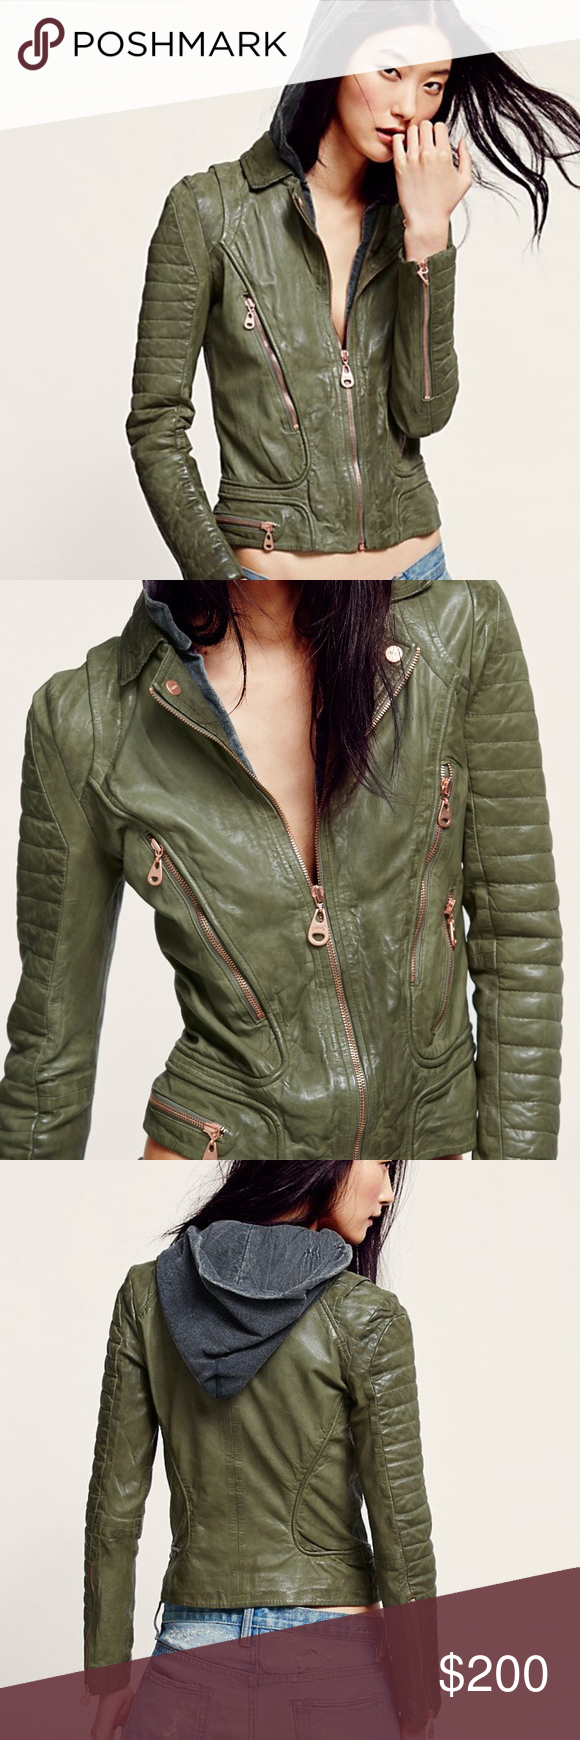 Iso Doma Free People Green Leather Jacket Hood S M Green Leather Jackets Olive Green Leather Jacket Jackets [ 1740 x 580 Pixel ]